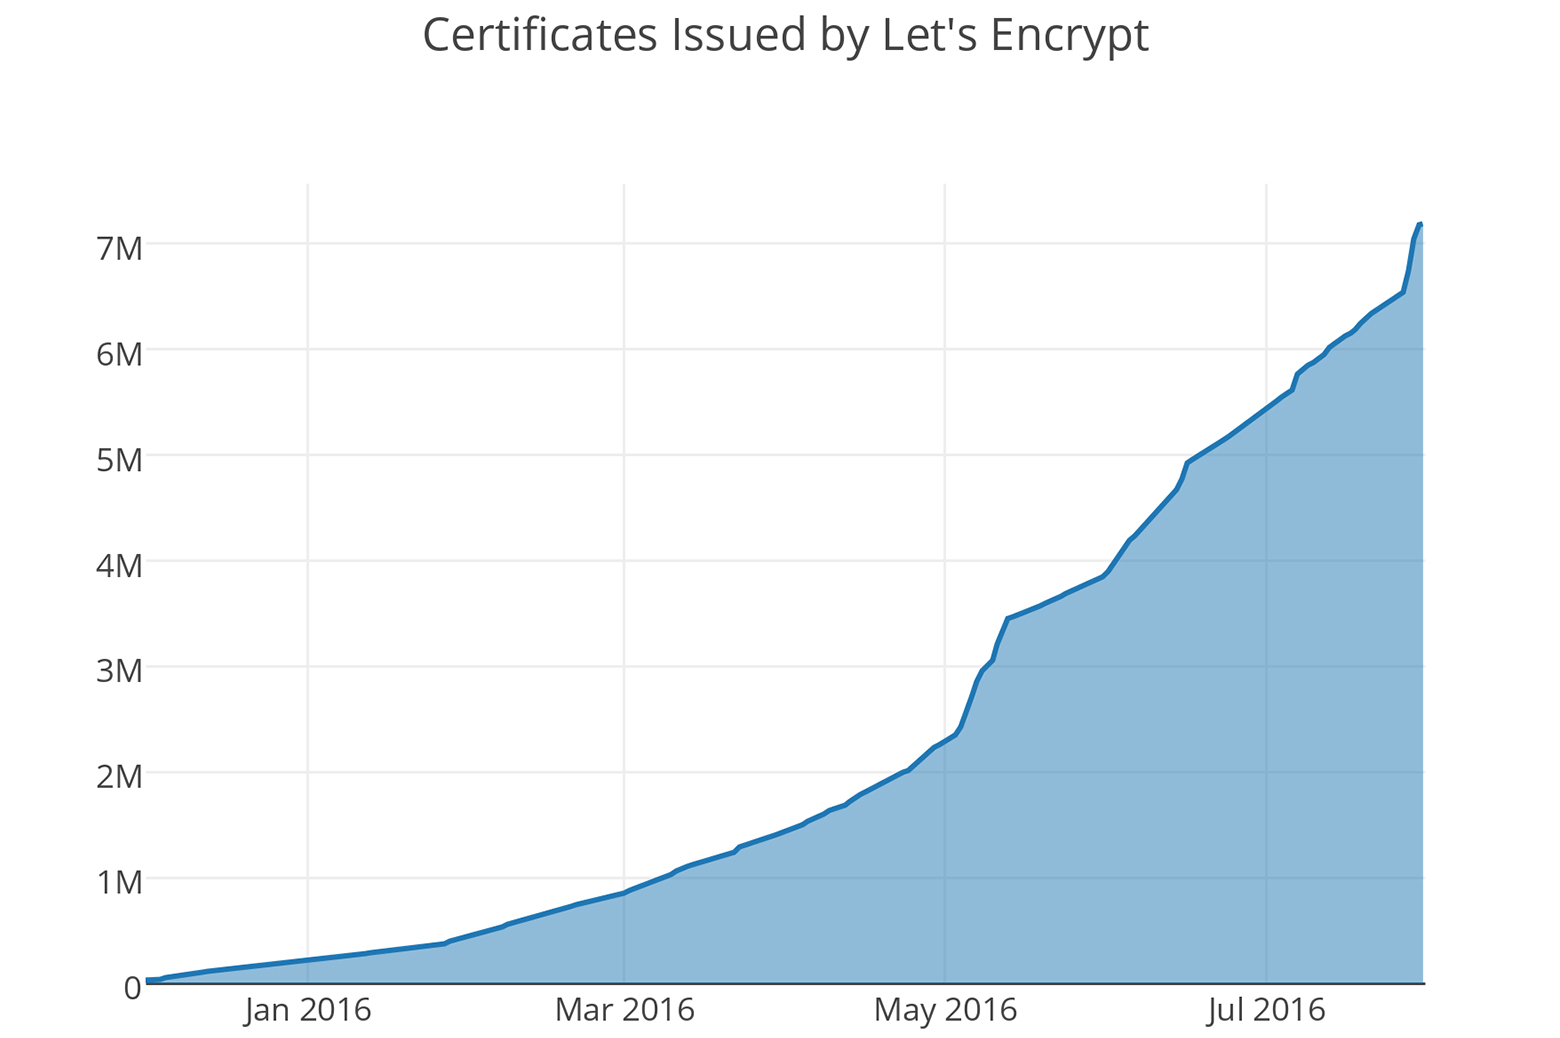 Let's Encrypt issued its 7 millionth certificate on July 29, 2016